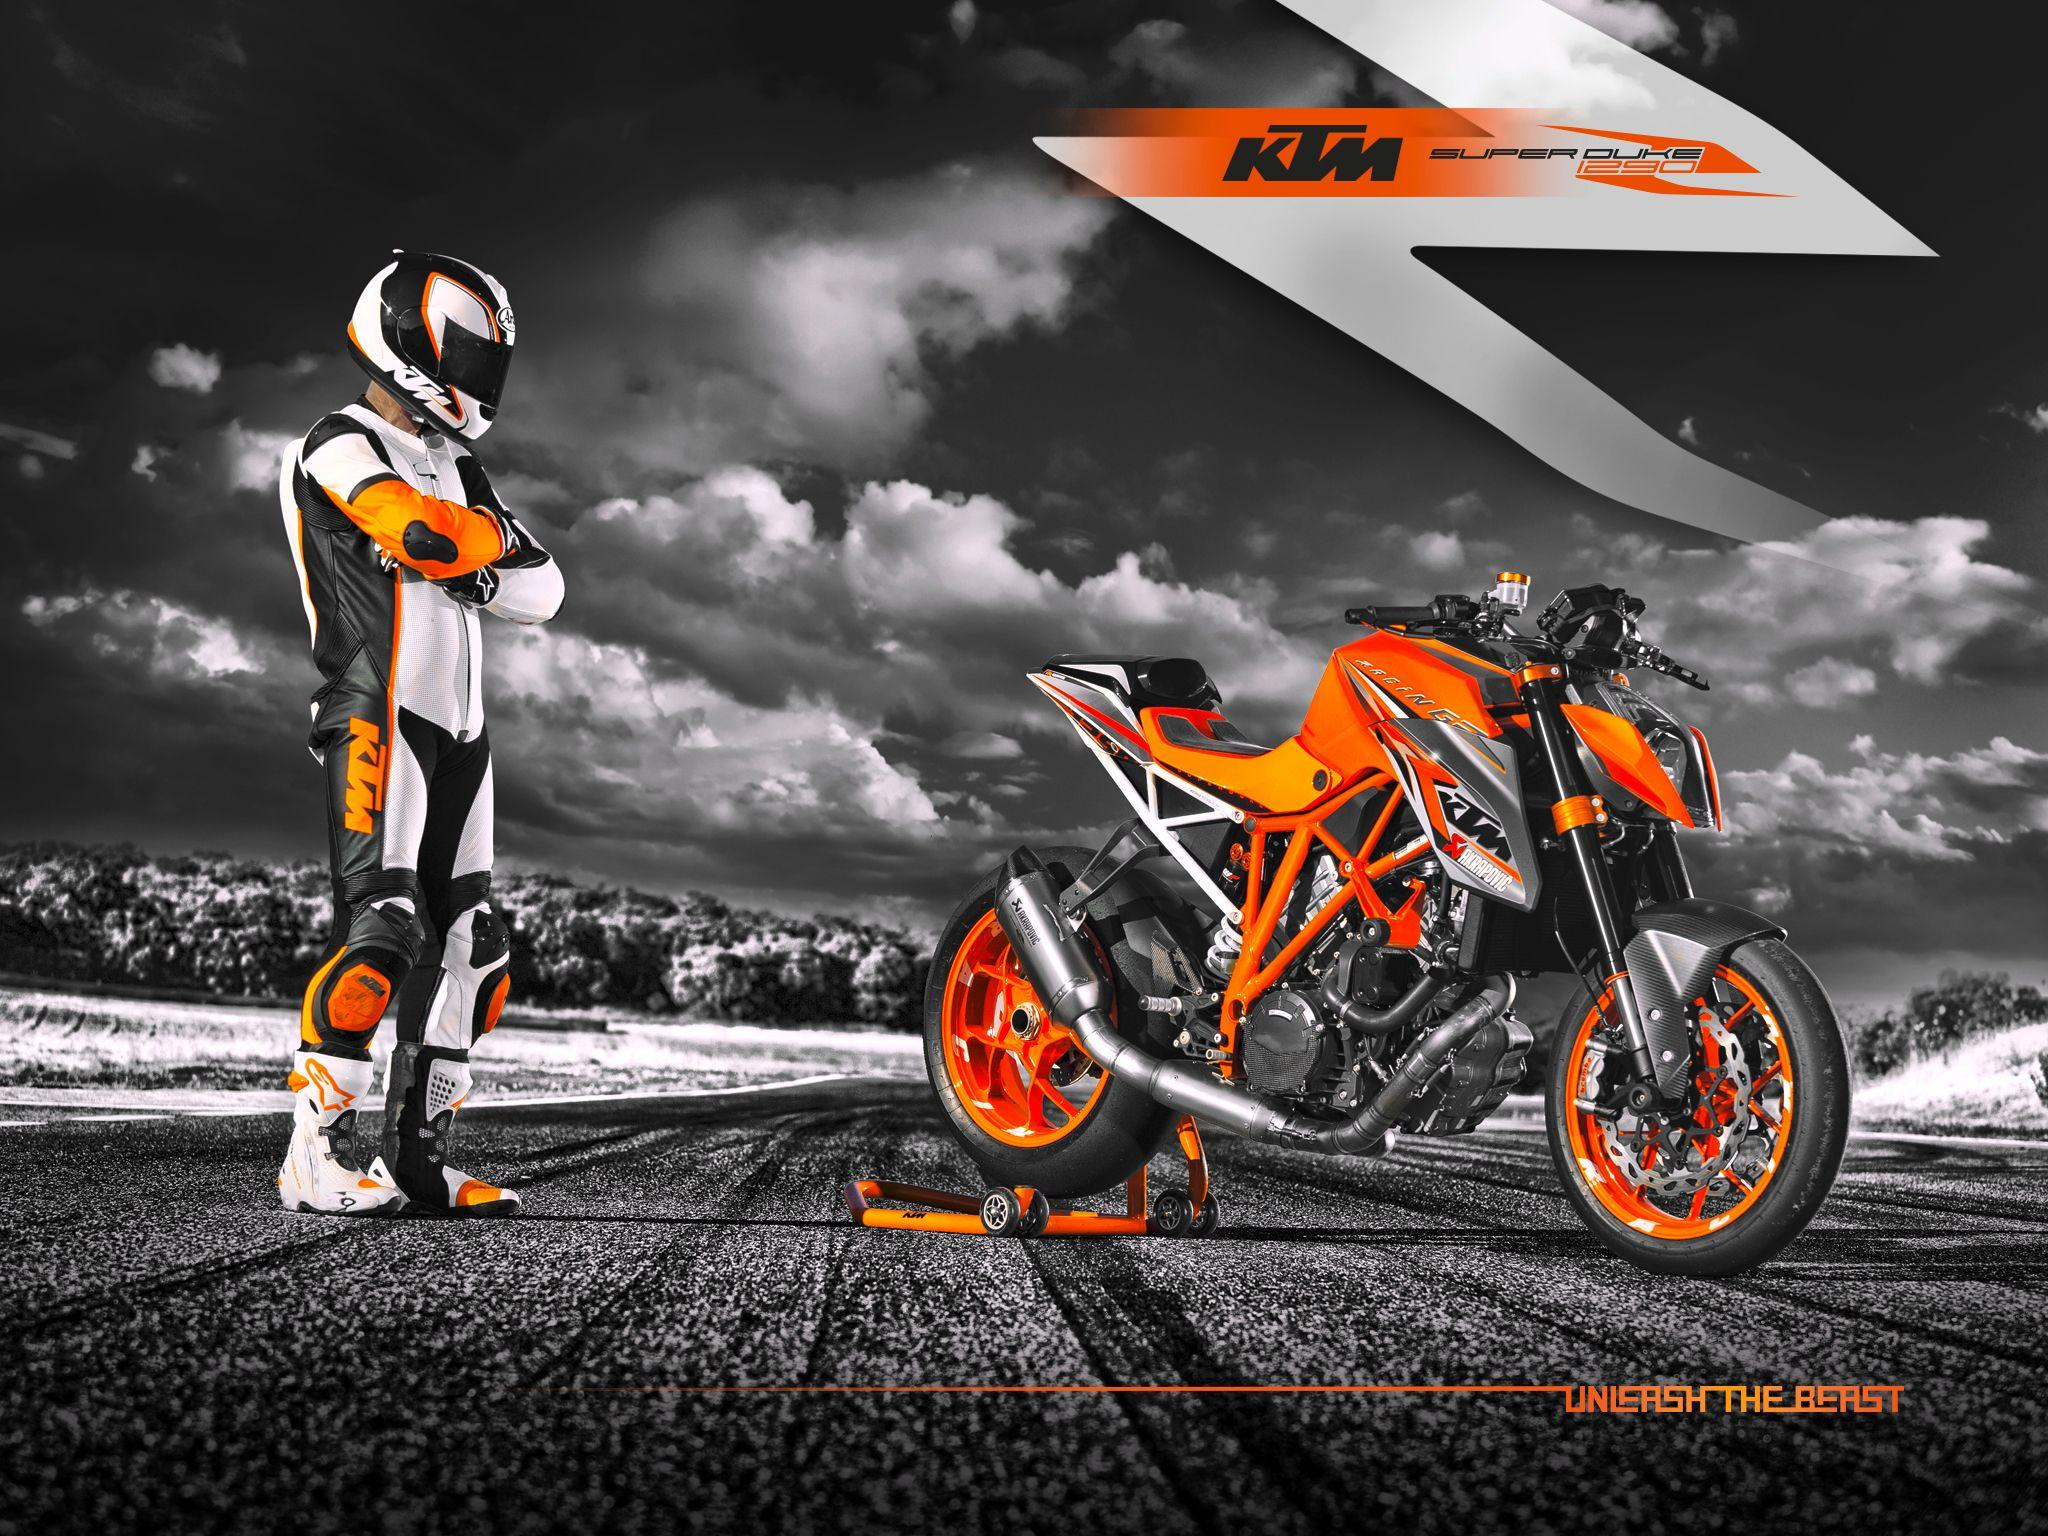 KTM Logo Wallpapers - Wallpaper Cave